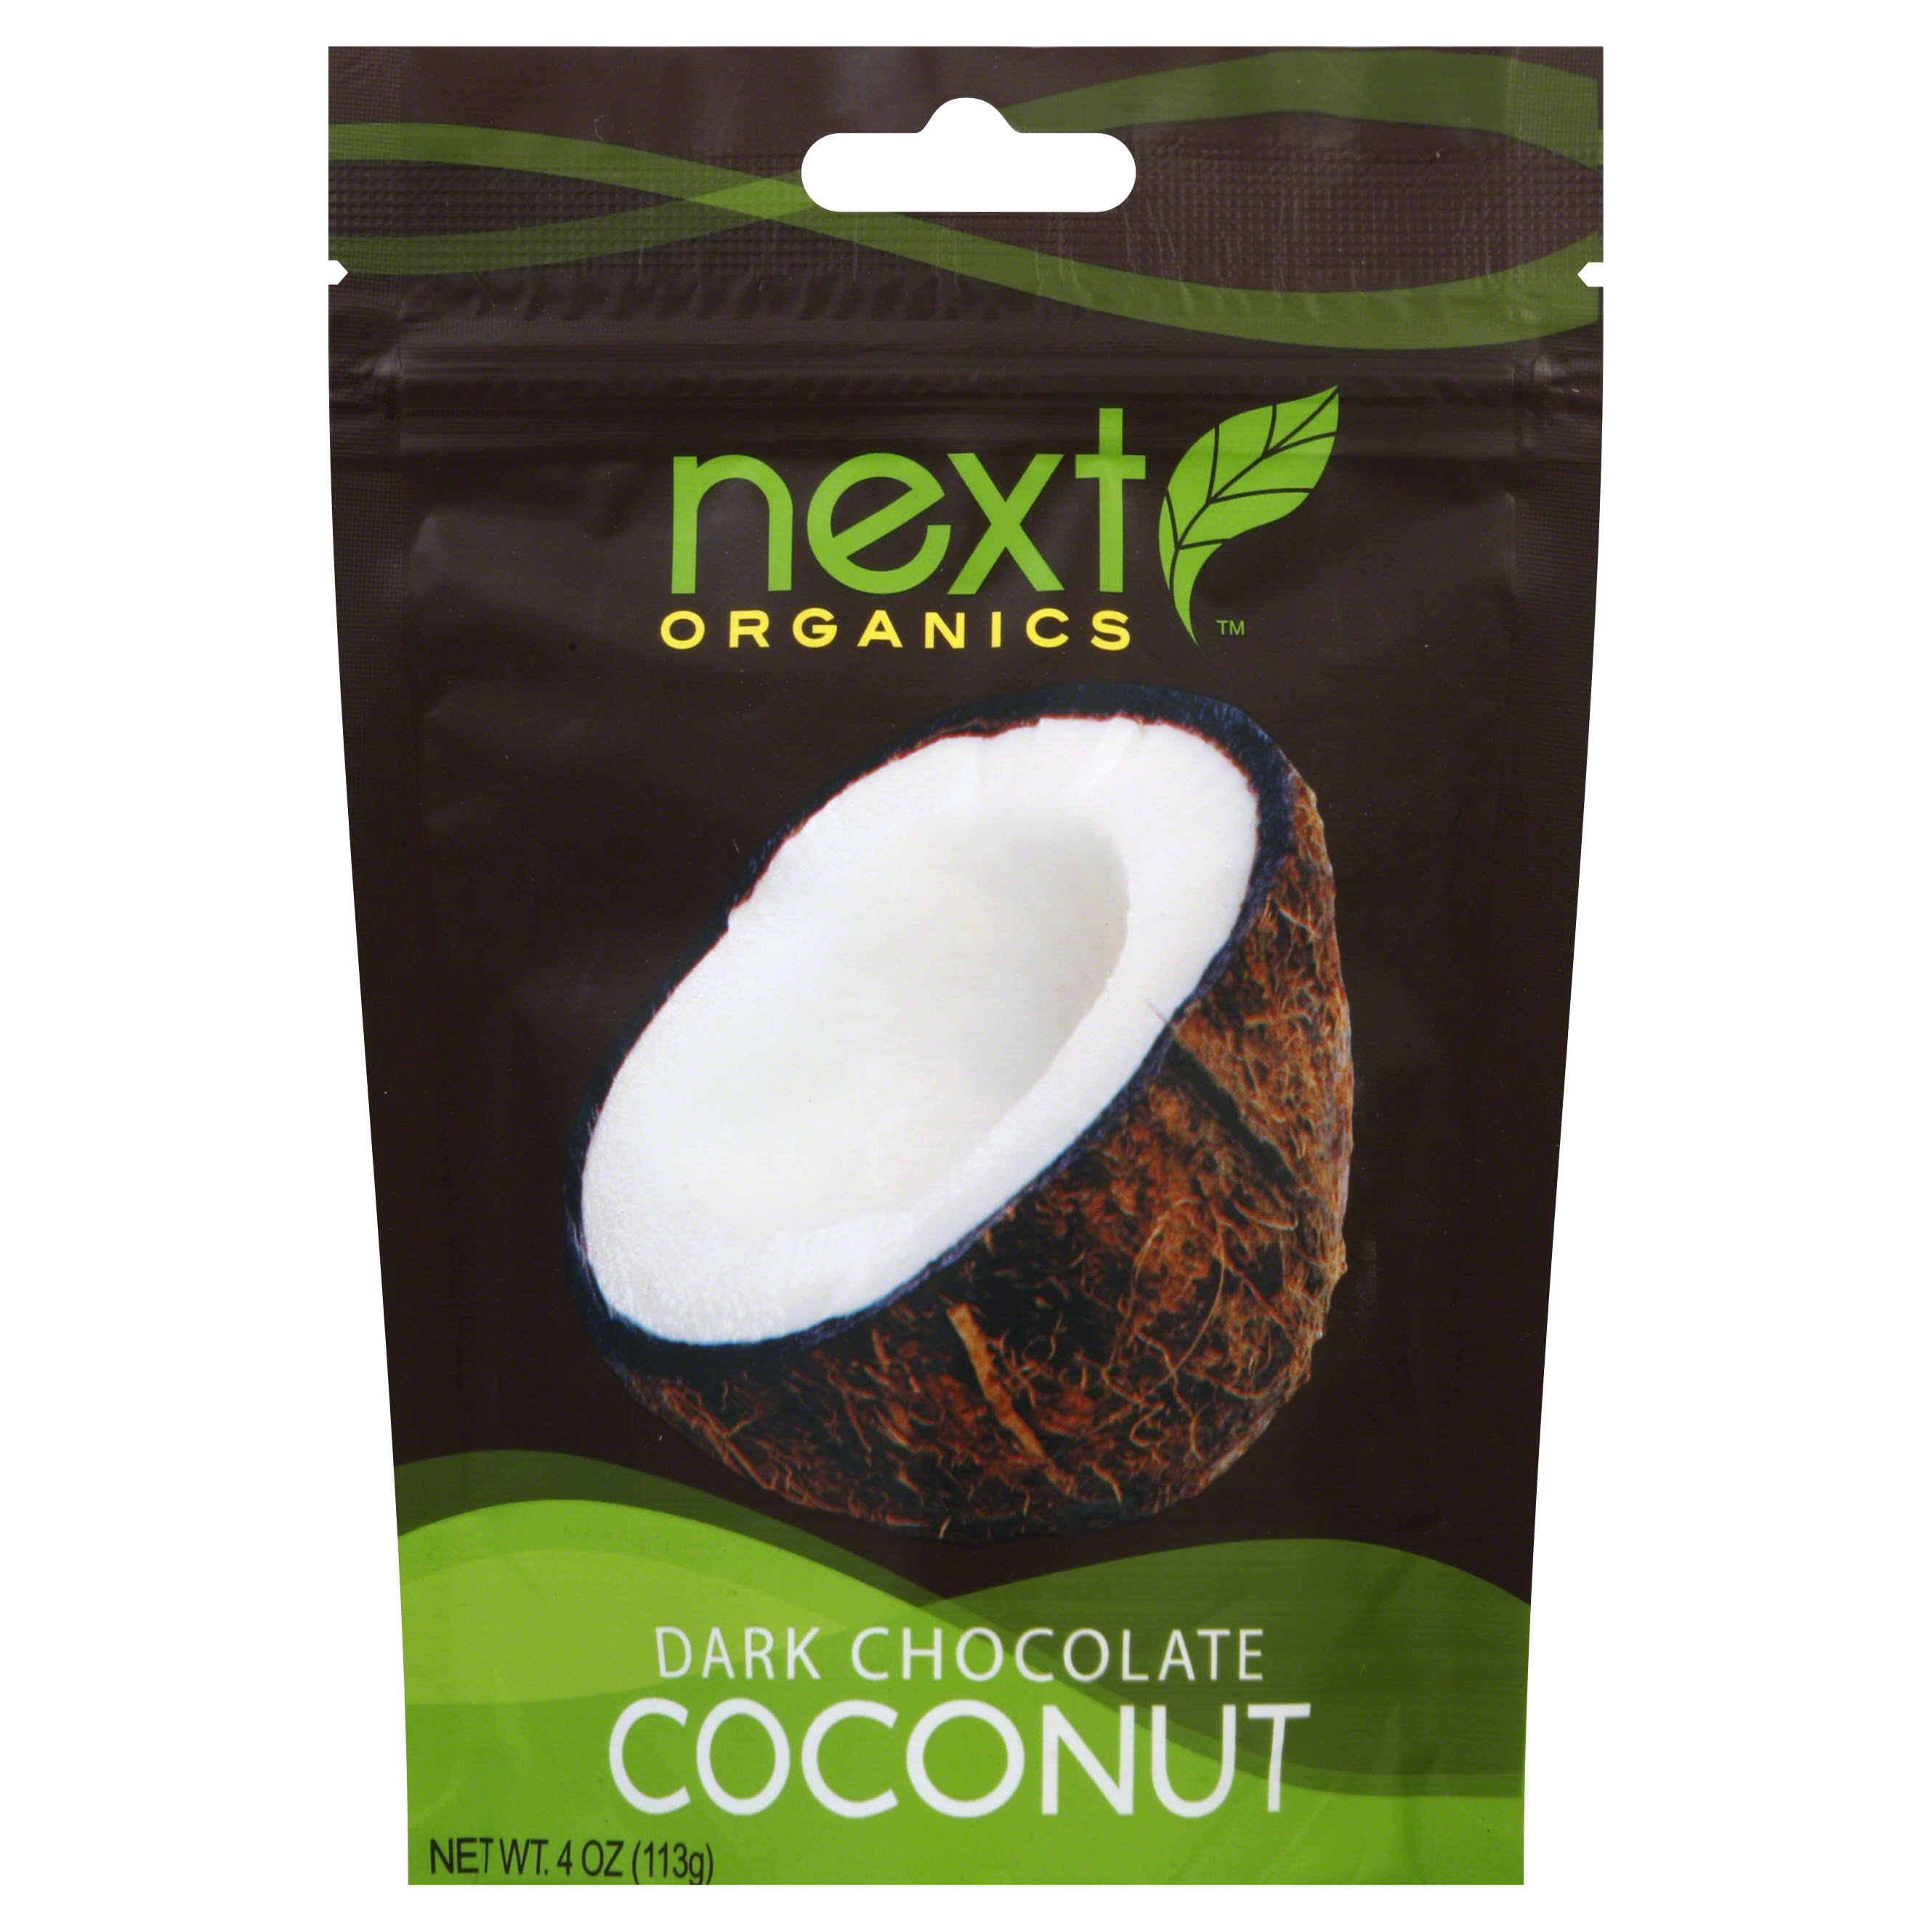 Next Coconut, Dark Chocolate - 4 oz